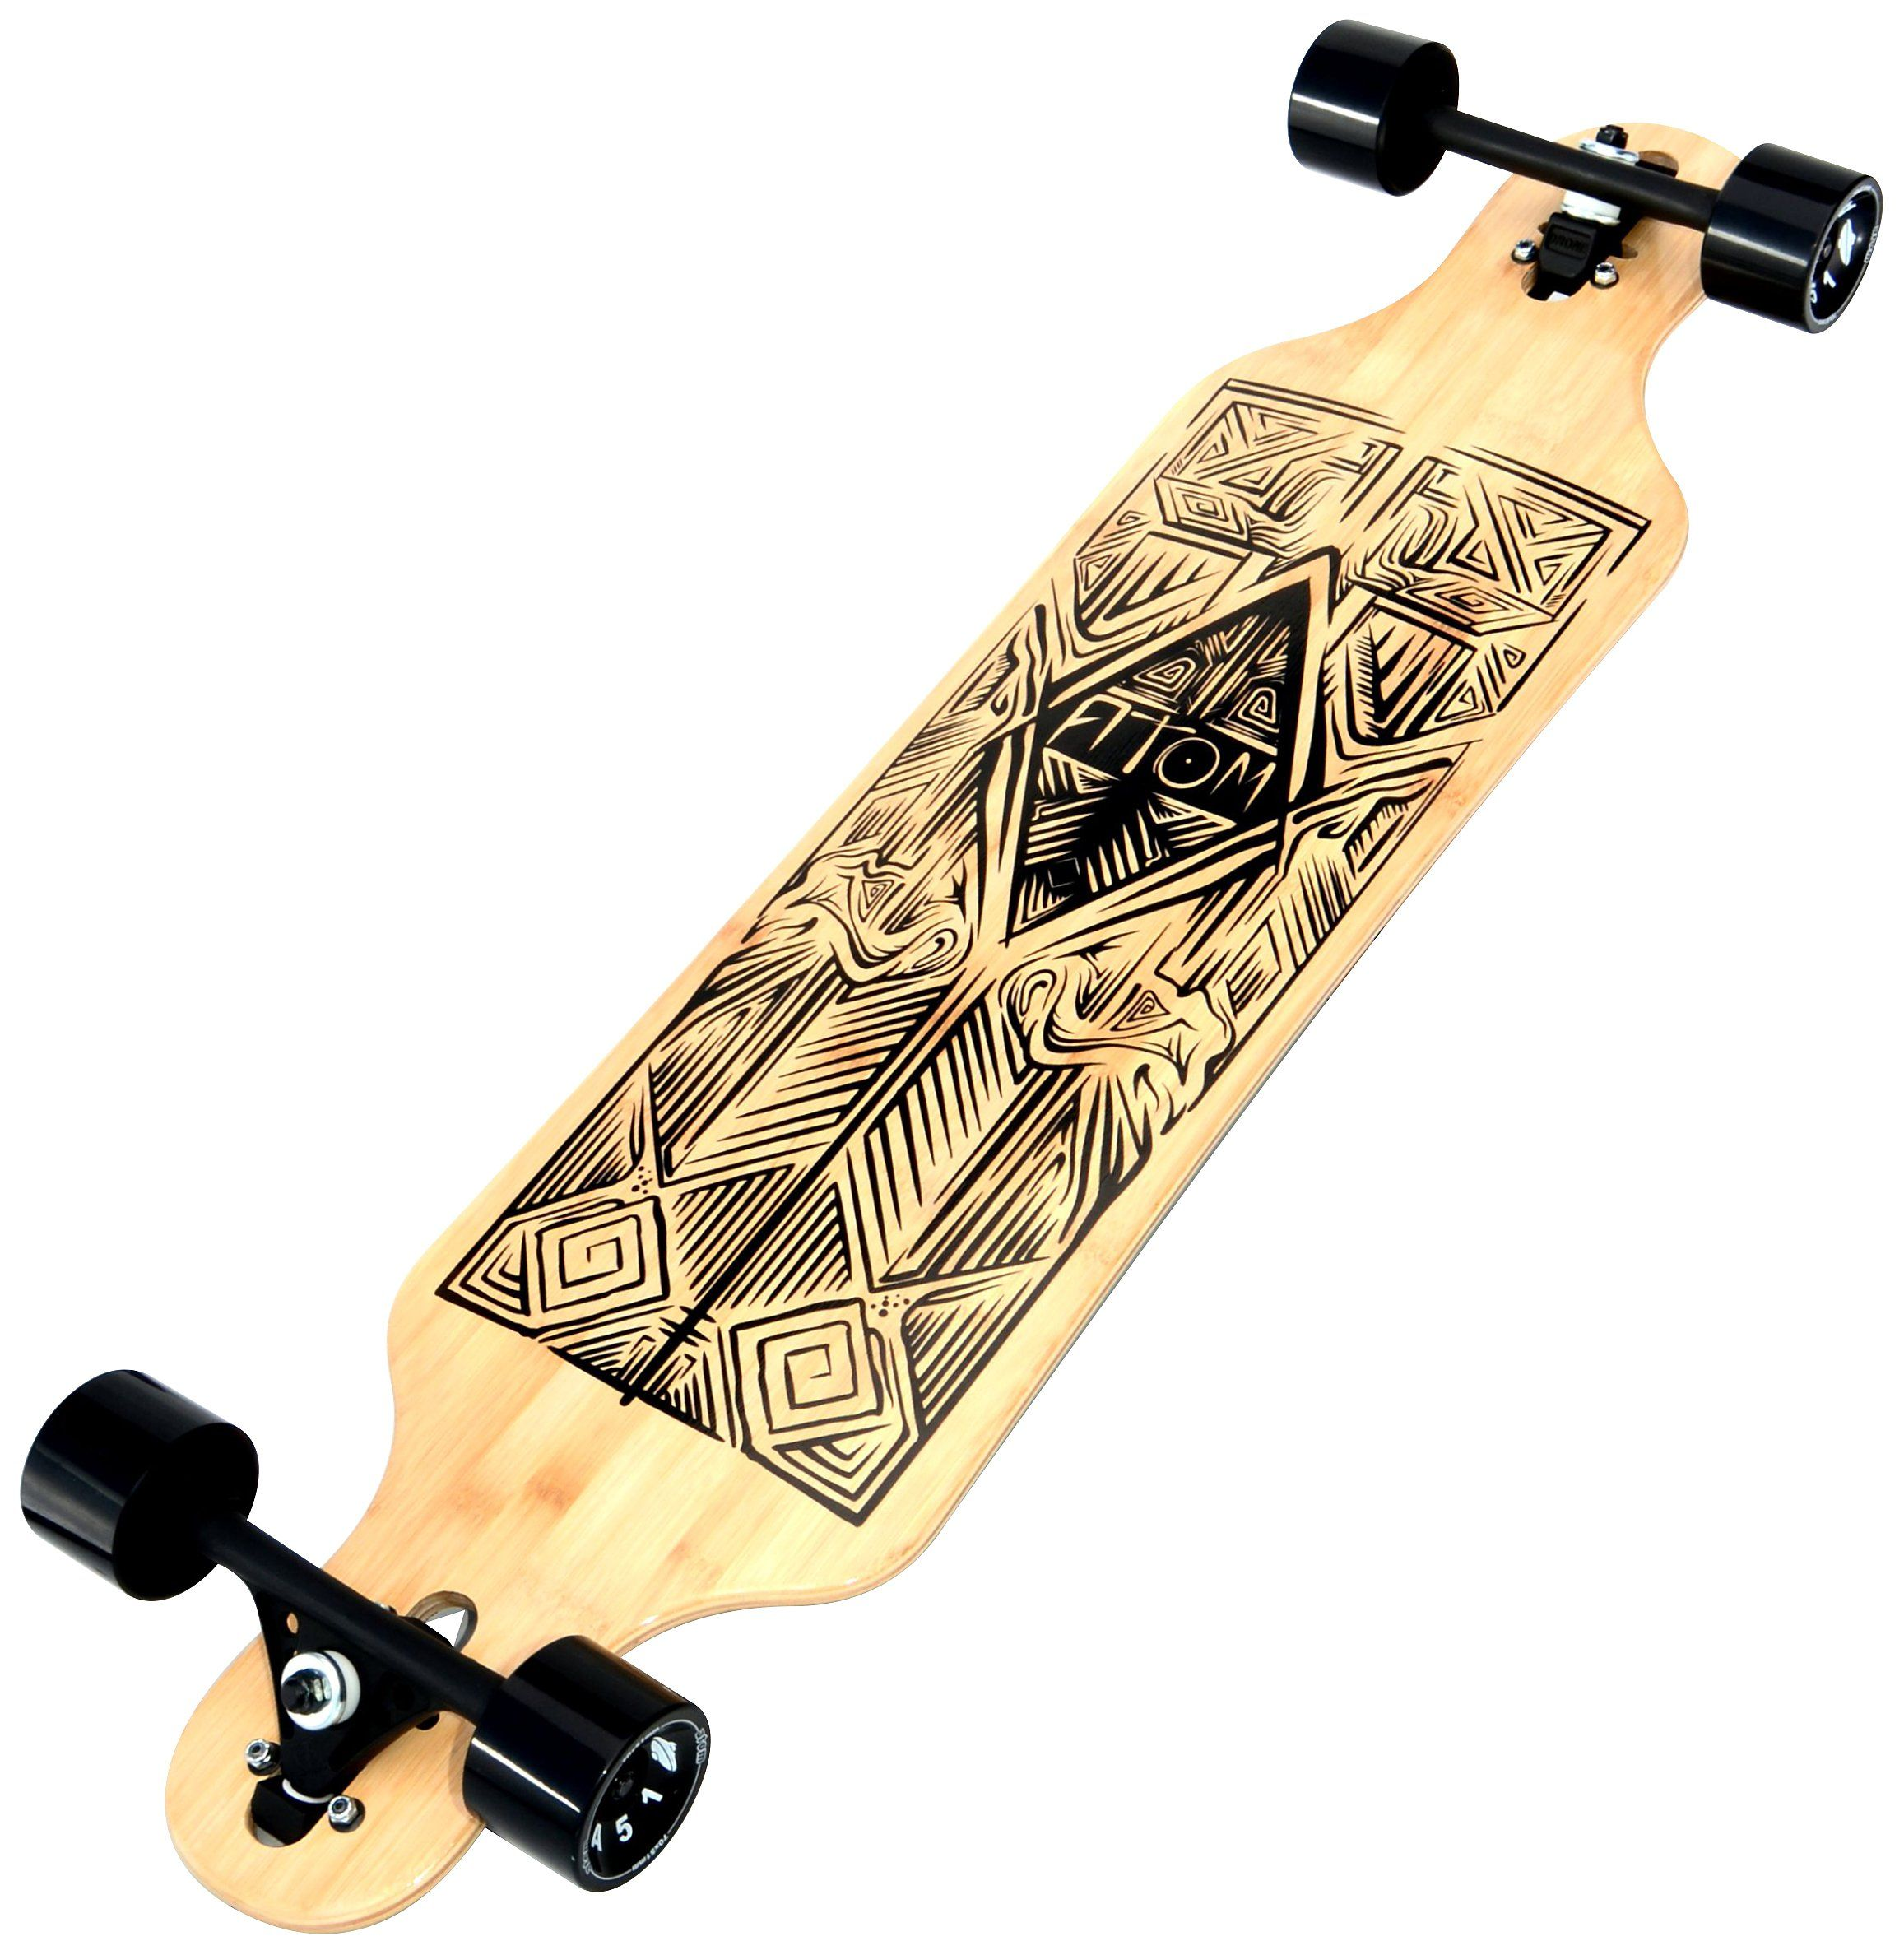 die besten 25 drop deck longboard ideen auf pinterest longboards longboard design und skateboard. Black Bedroom Furniture Sets. Home Design Ideas